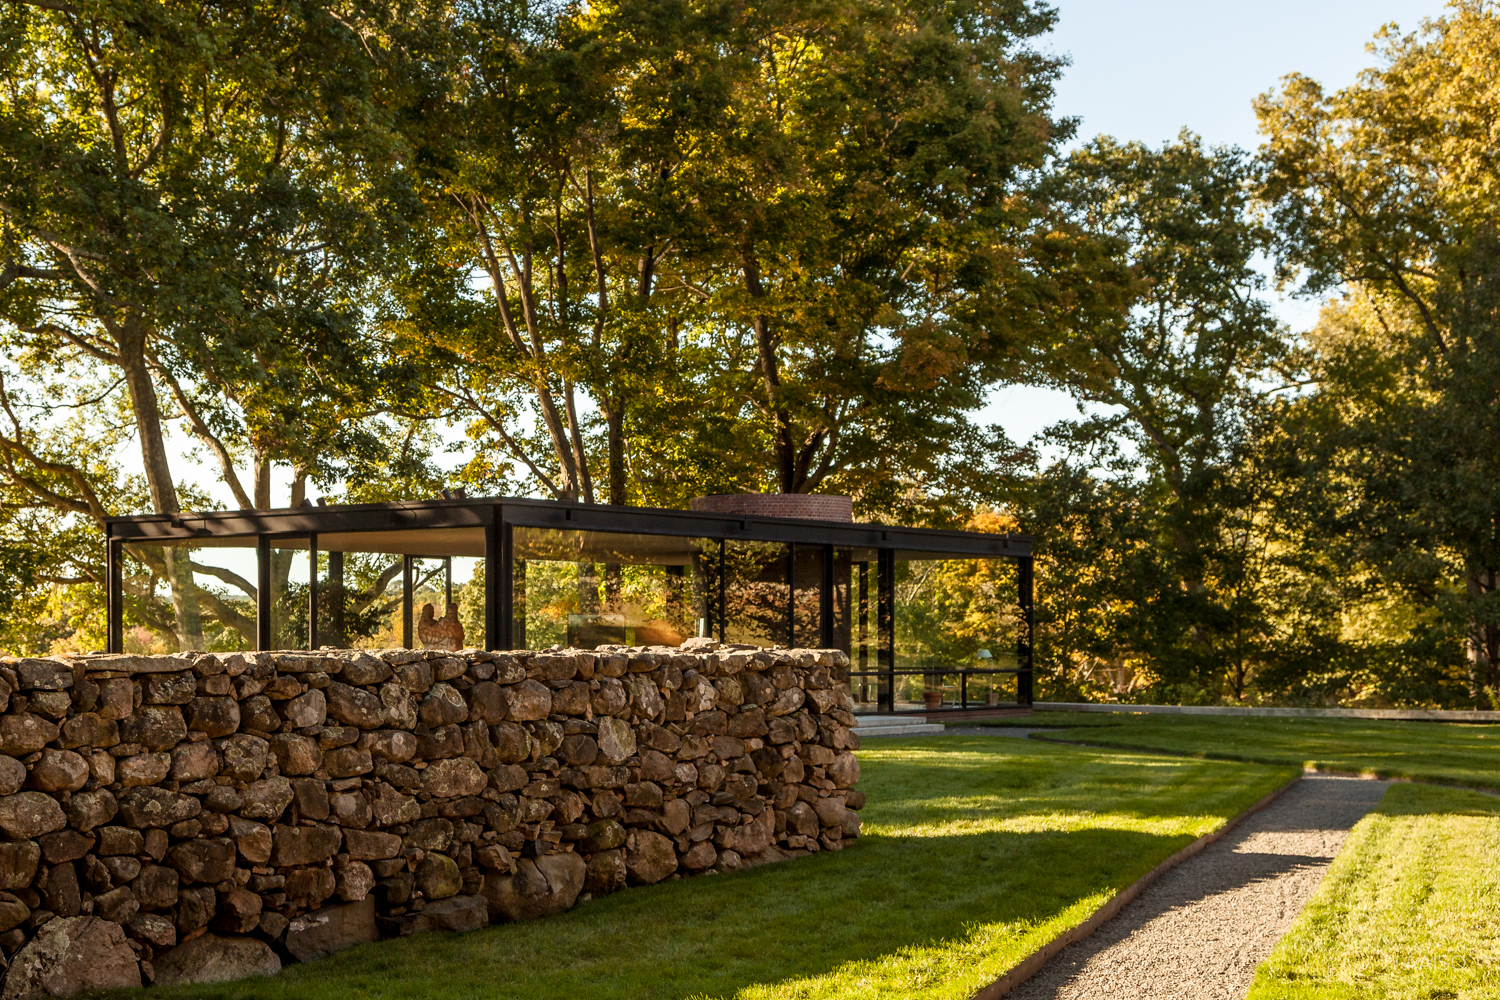 Philip Johnson's Glass House. Exterior